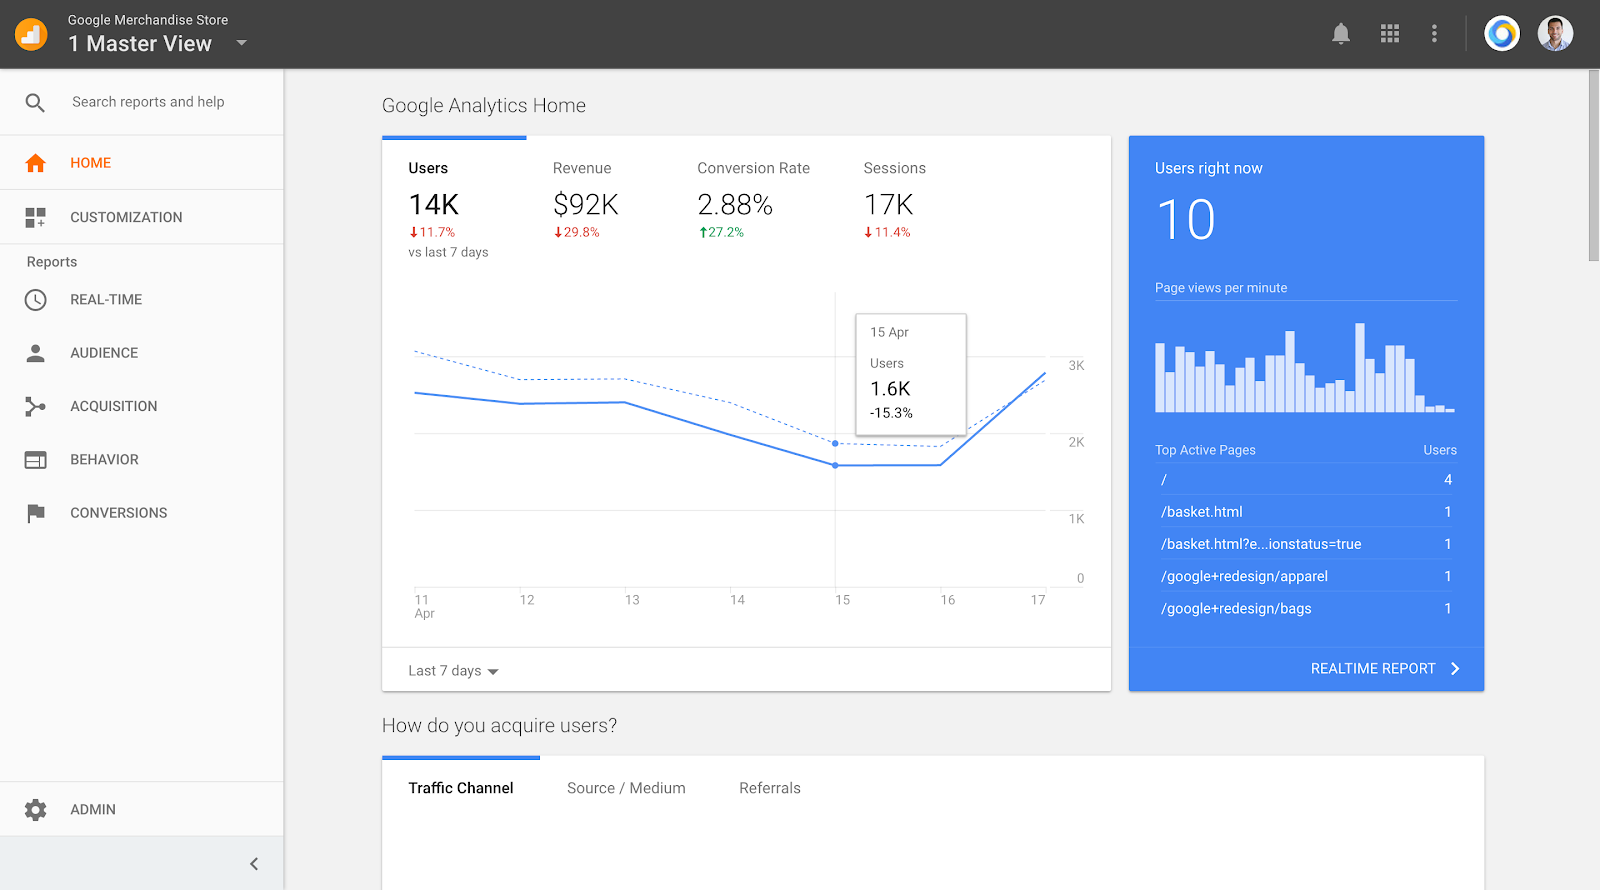 new gogle analytics home